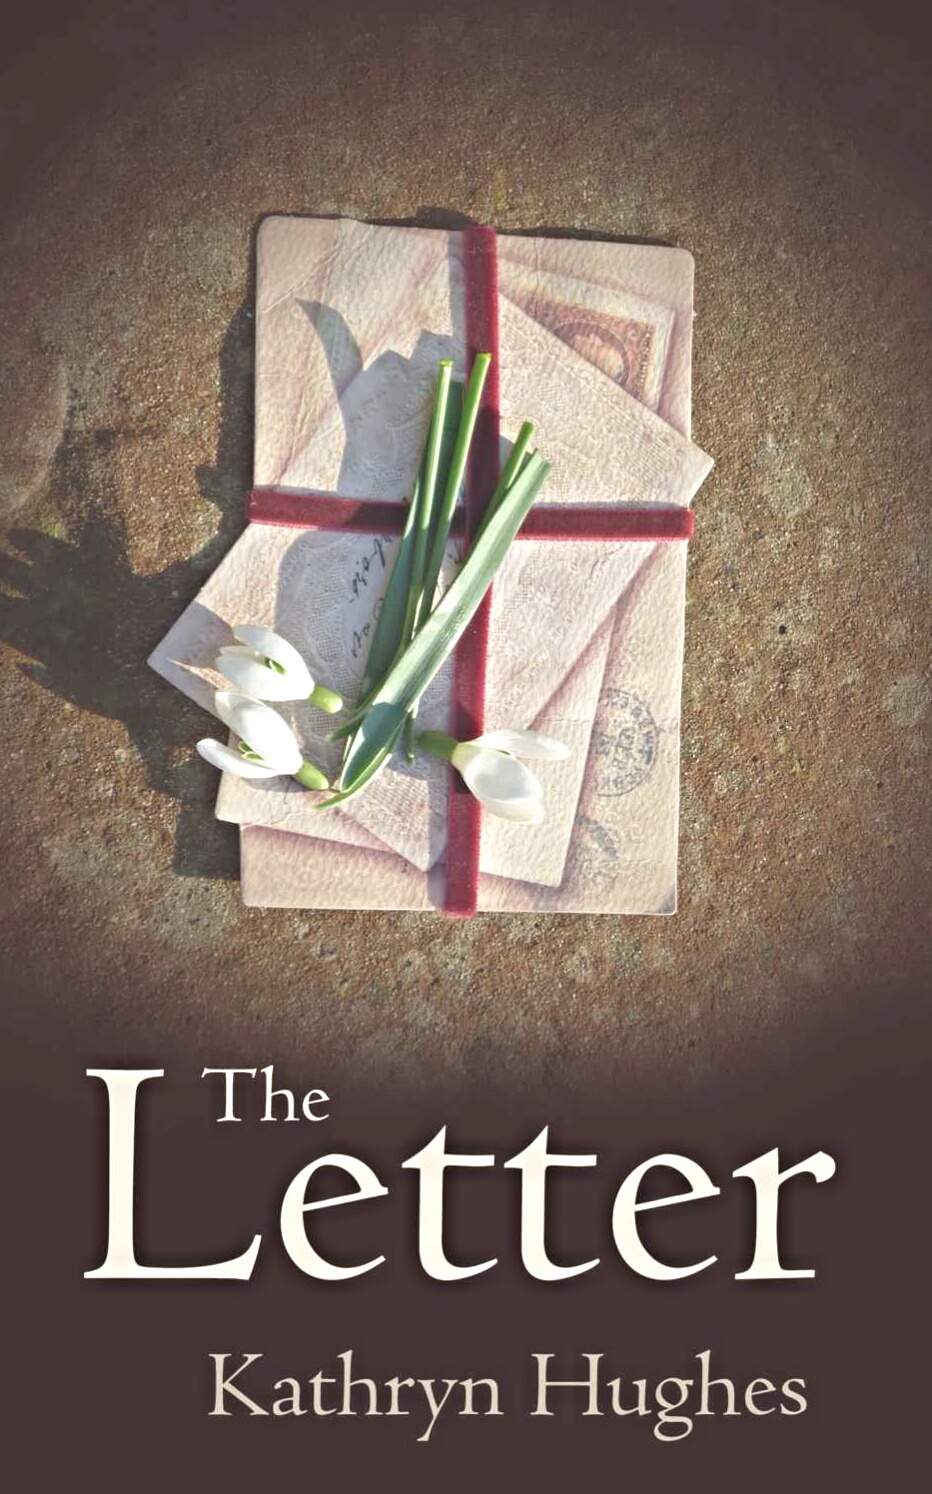 Book review the letter by kathryn hughes ajoobacats blog image madrichimfo Images